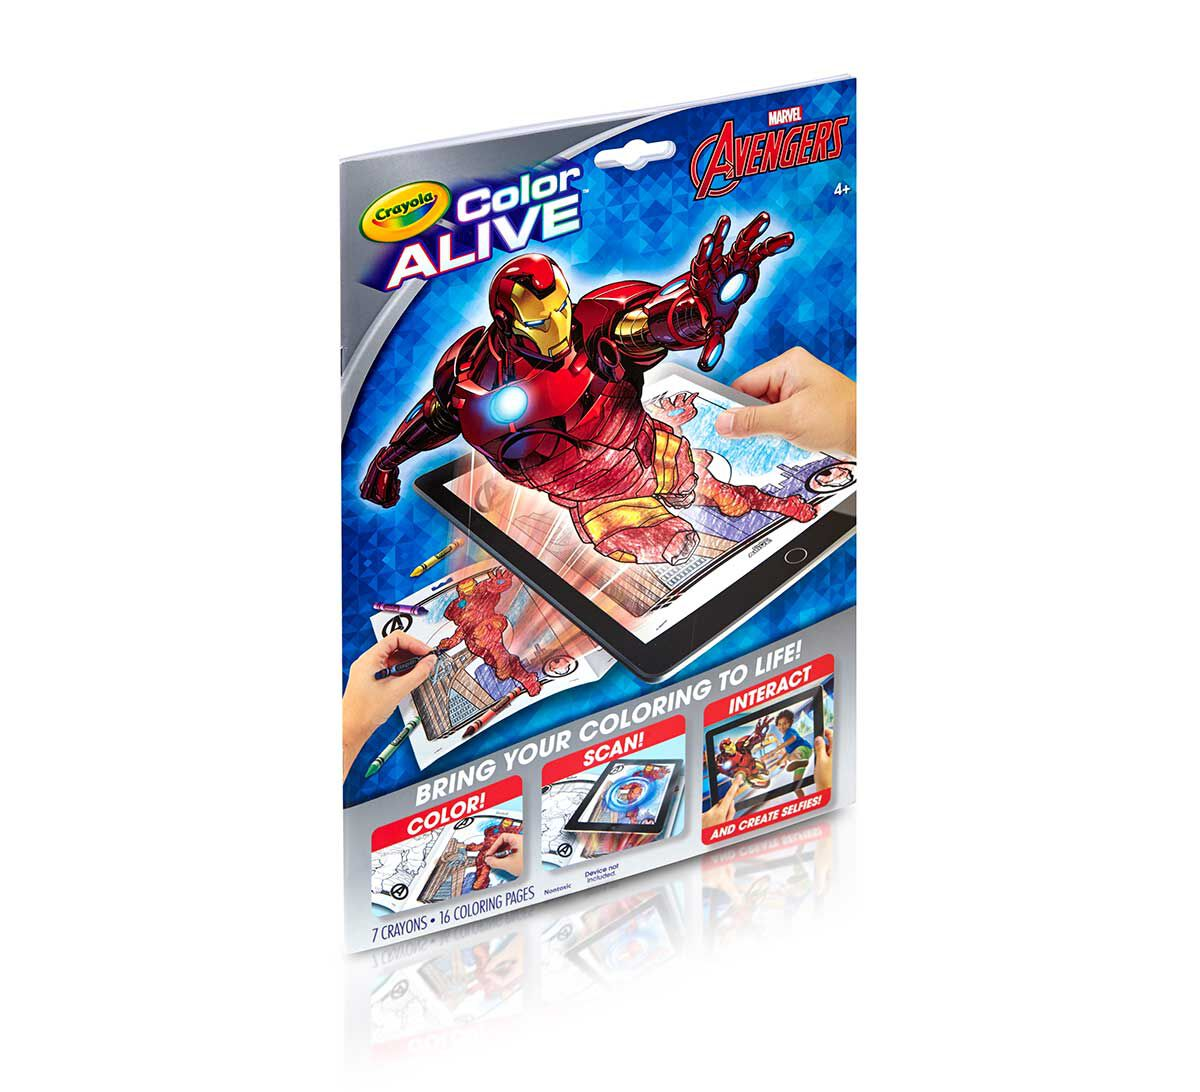 Coloring interactive games - Color Alive Avengers